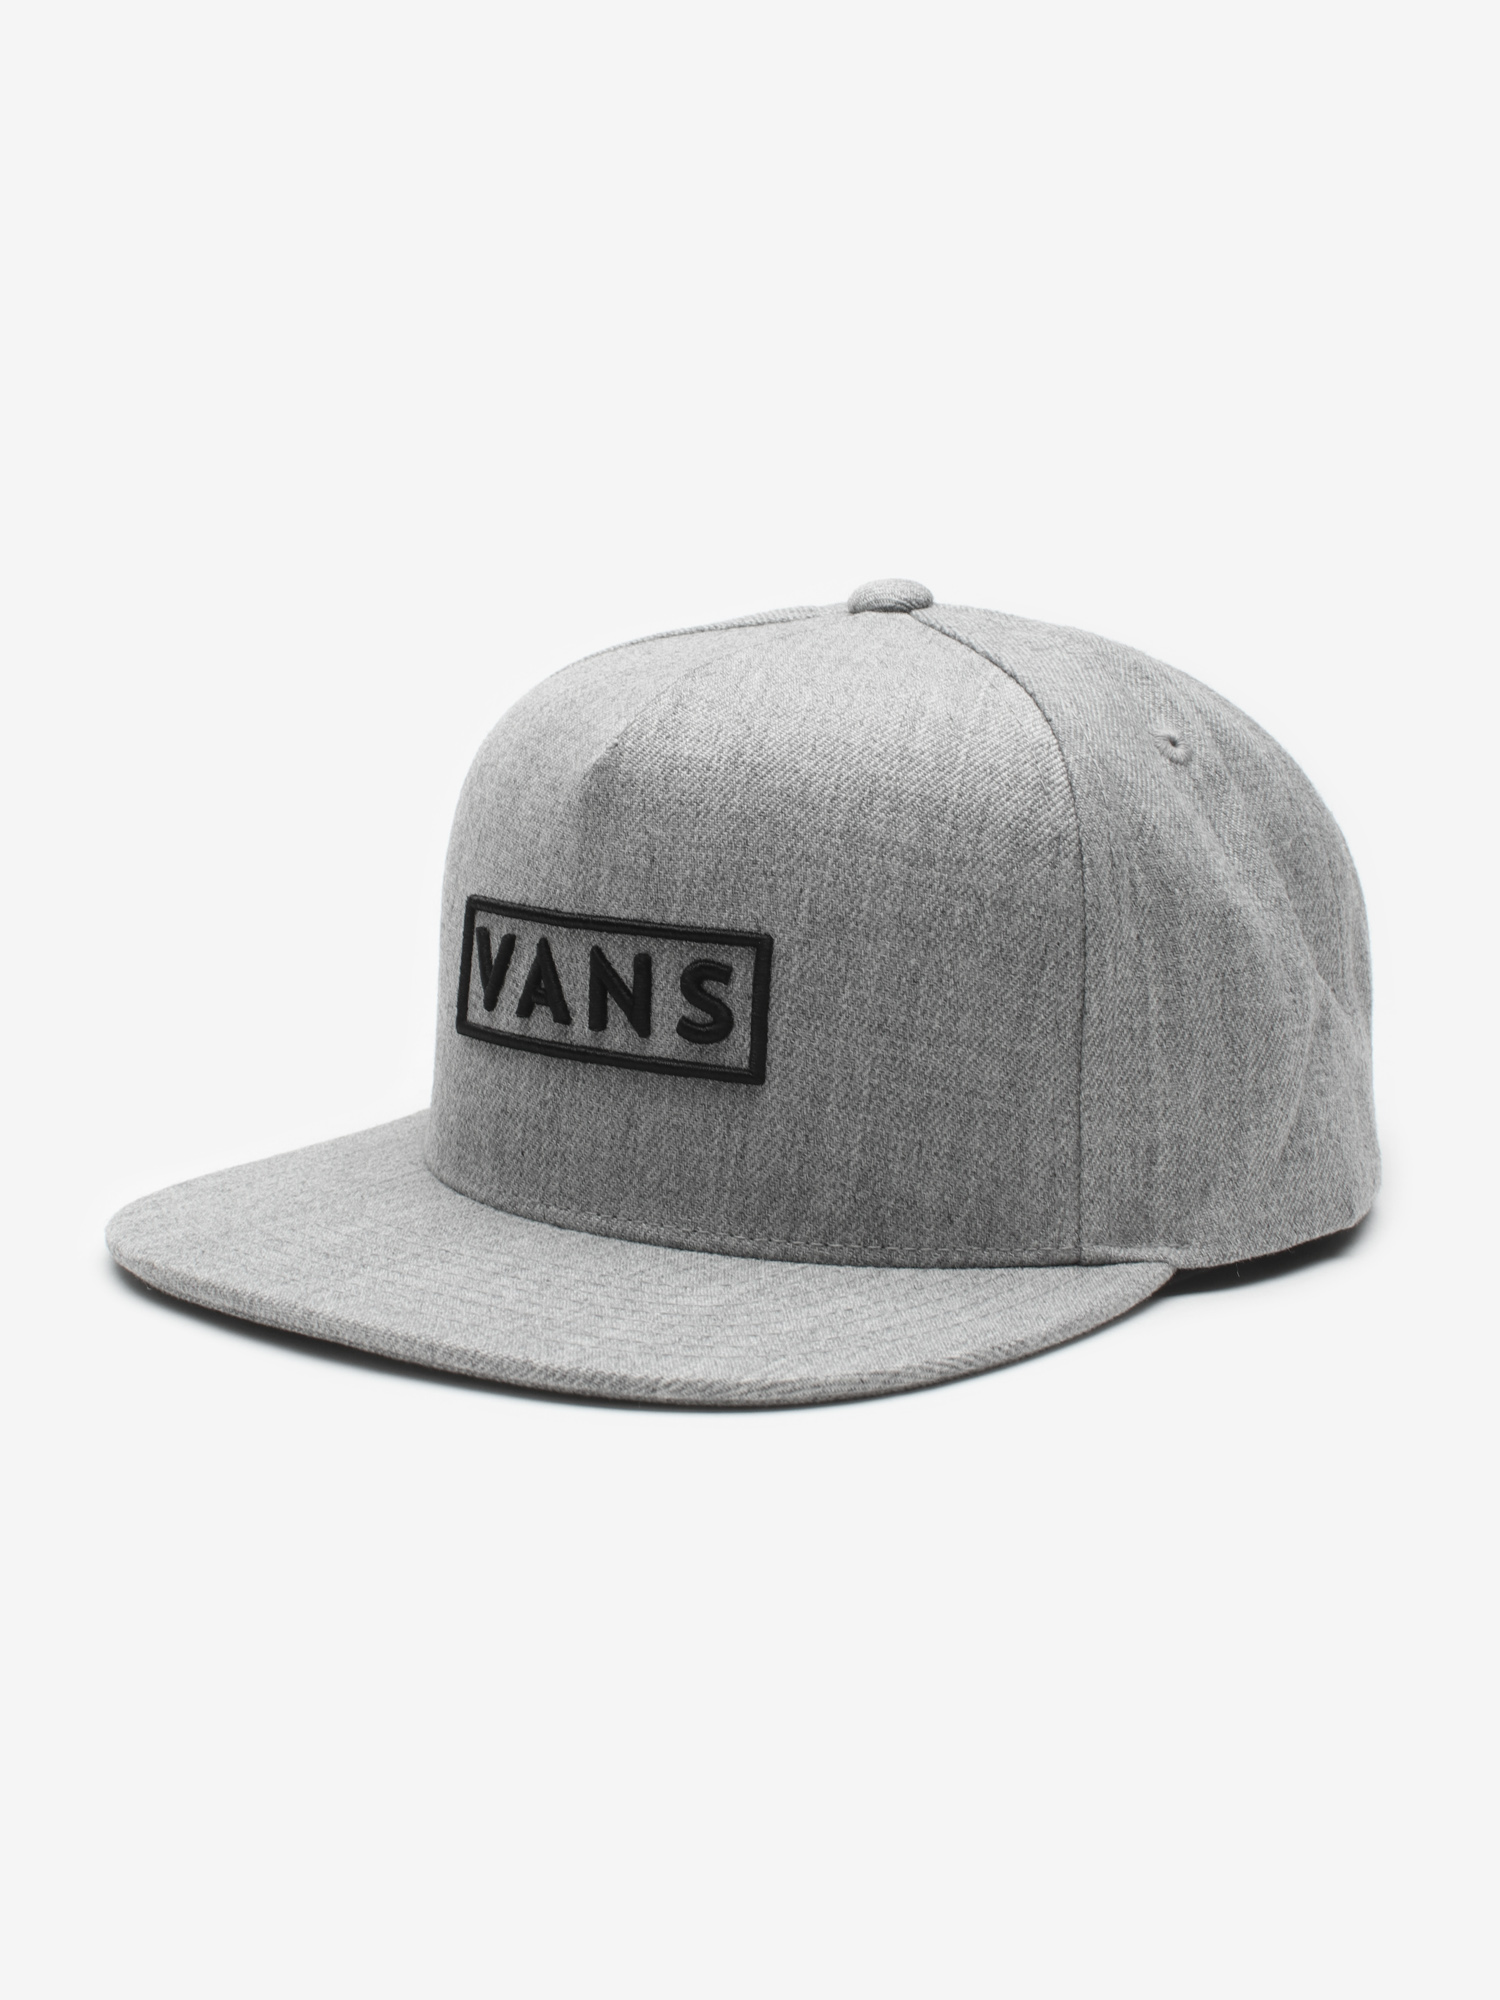 Kšiltovka Vans Mn Easy Box Snapback Heather Grey Šedá